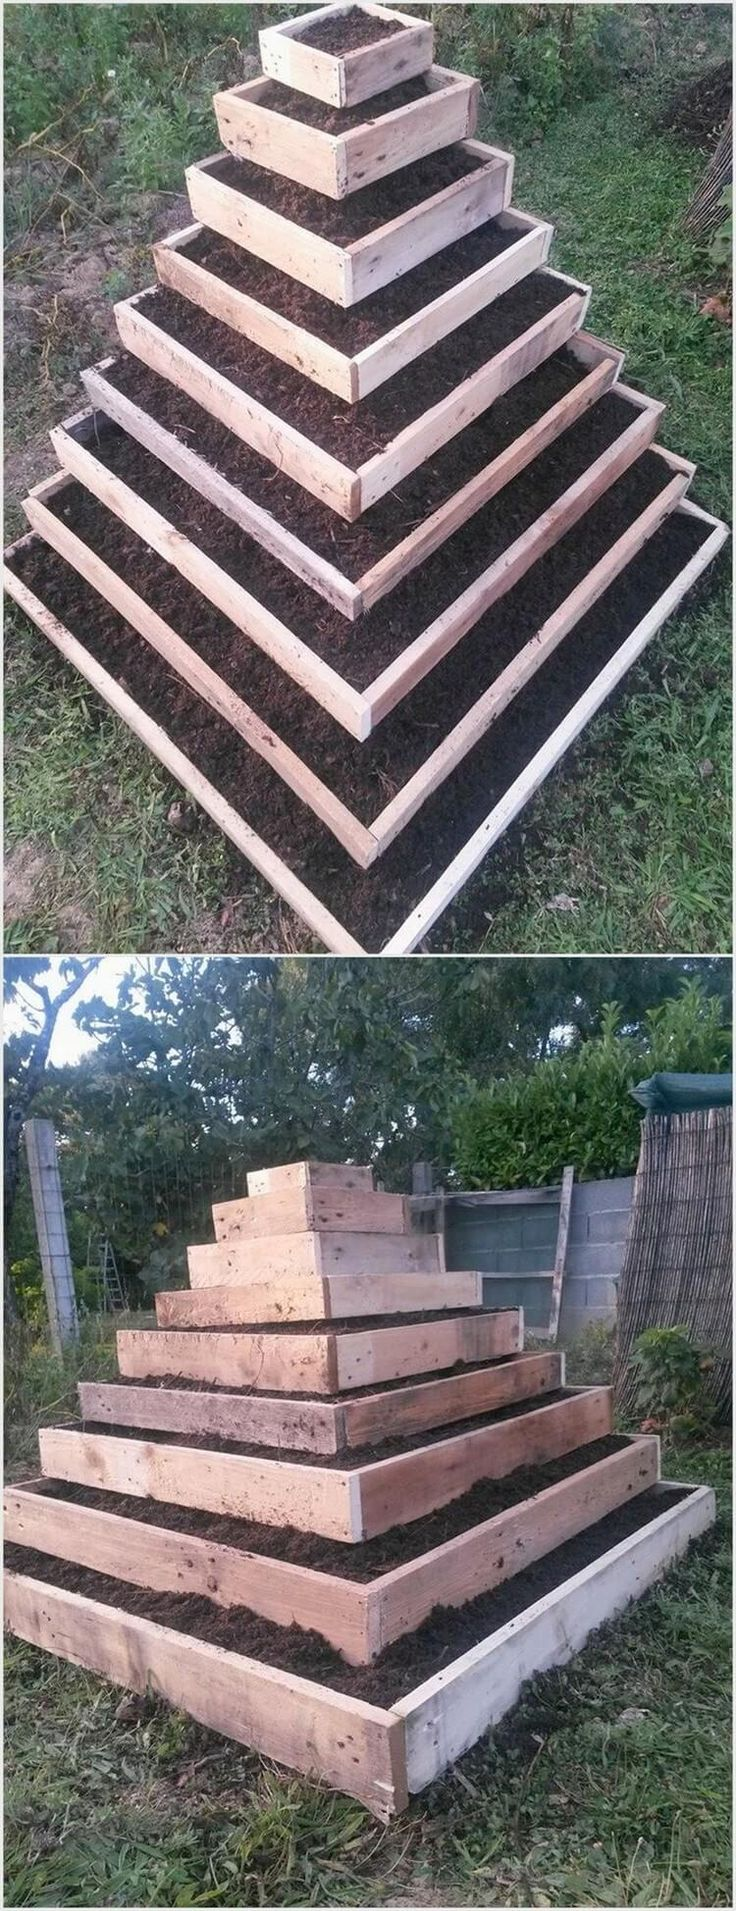 This is quite an innovative looking pallet gardening planter project that is much unique looking in first gaze. In this project you will view the pyramid form of the planters as each single planter has been beautifully filled with the mud. To make it look lovely you can add it up with colorful flowers too.